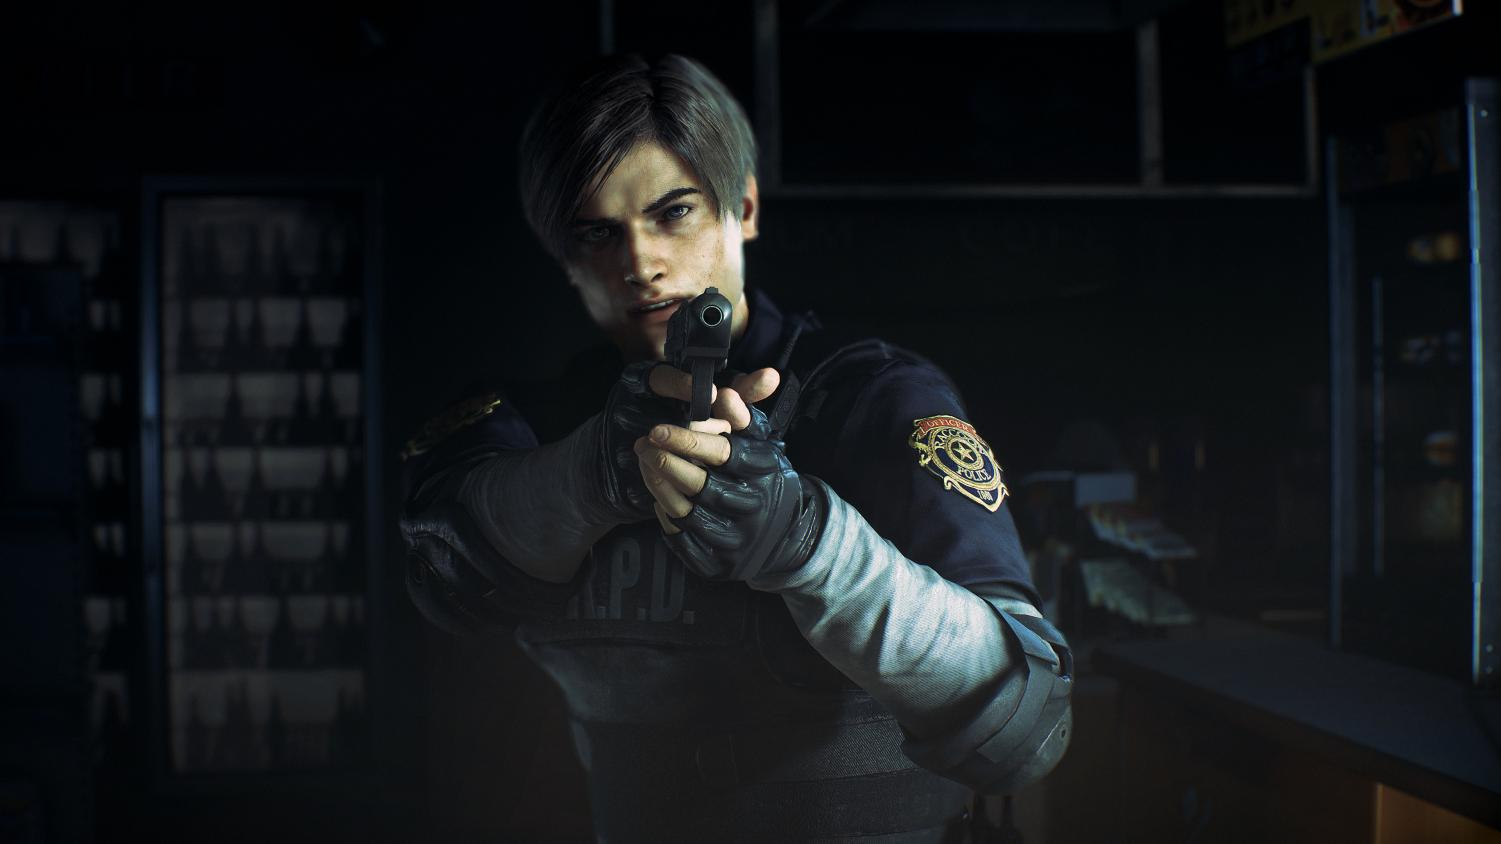 Resident Evil 2 - January 25 (PS4, Xbox One, PC) -   Capcom's remake of the PS1 classic Resident Evil 2 isn't some basic texture update. Apart from the story being near identical to the original (with a few changes to surprise fans of the original,) this is a brand new game.  It uses the same RE Engine as 2017's Resident Evil 7 to great effect. The rendering software allowed the developers to make character models so no two zombies are the same.   If you're skeptical, the 30 minute demo is out now for PS4, Xbox One and PC.